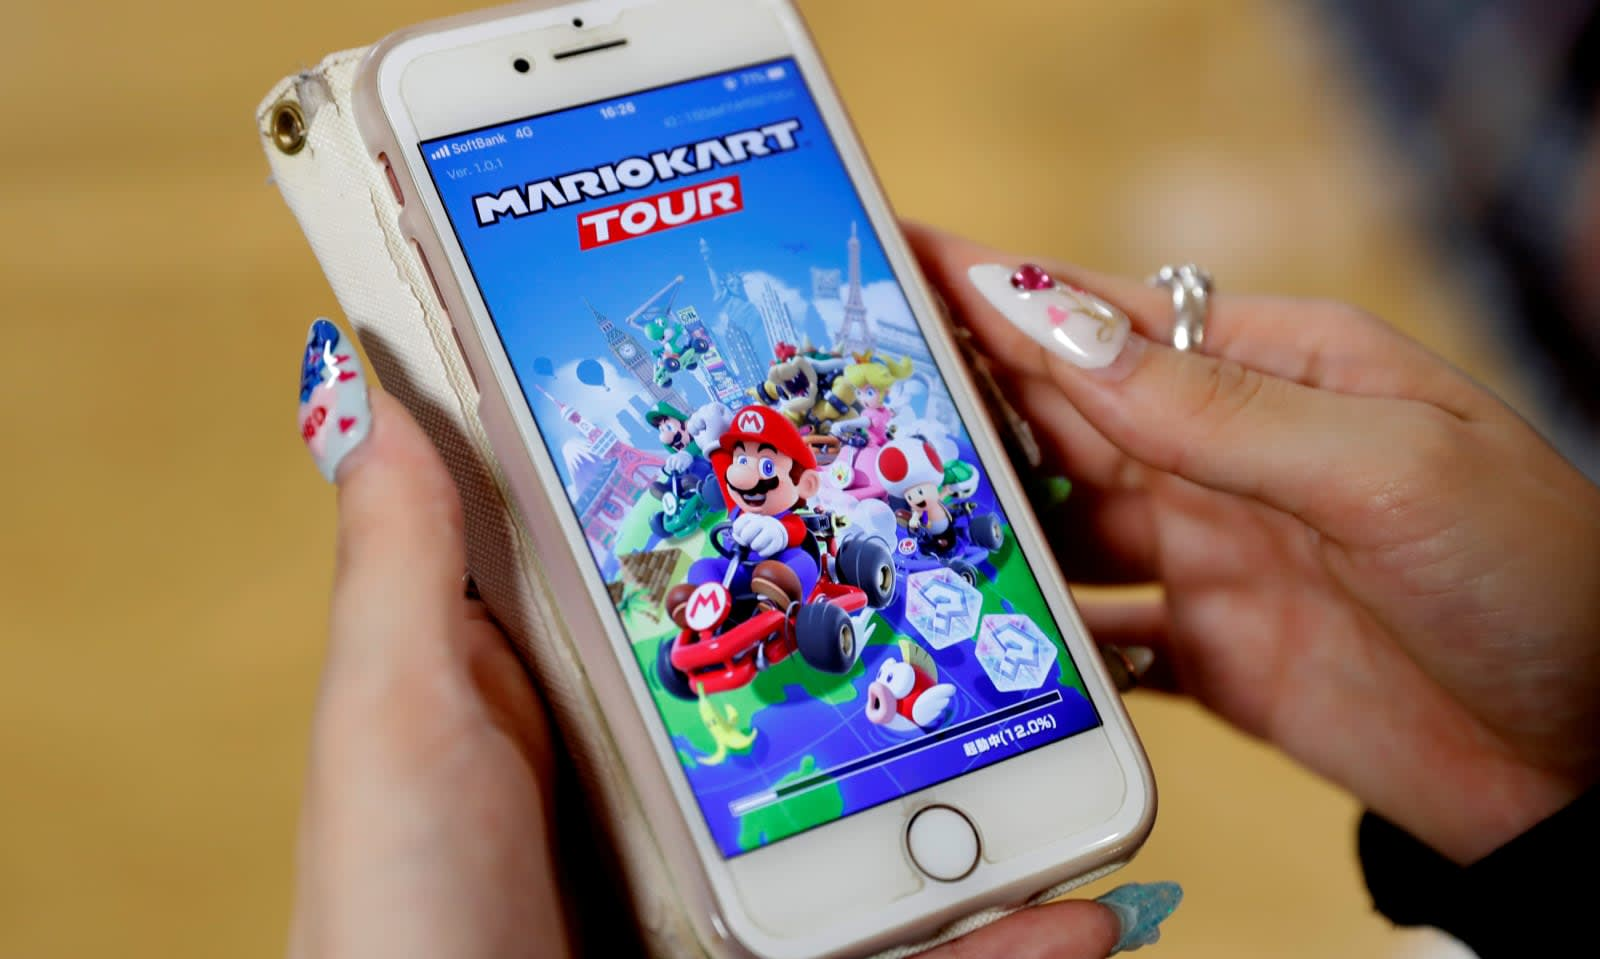 Now everyone can play 'Mario Kart Tour' multiplayer